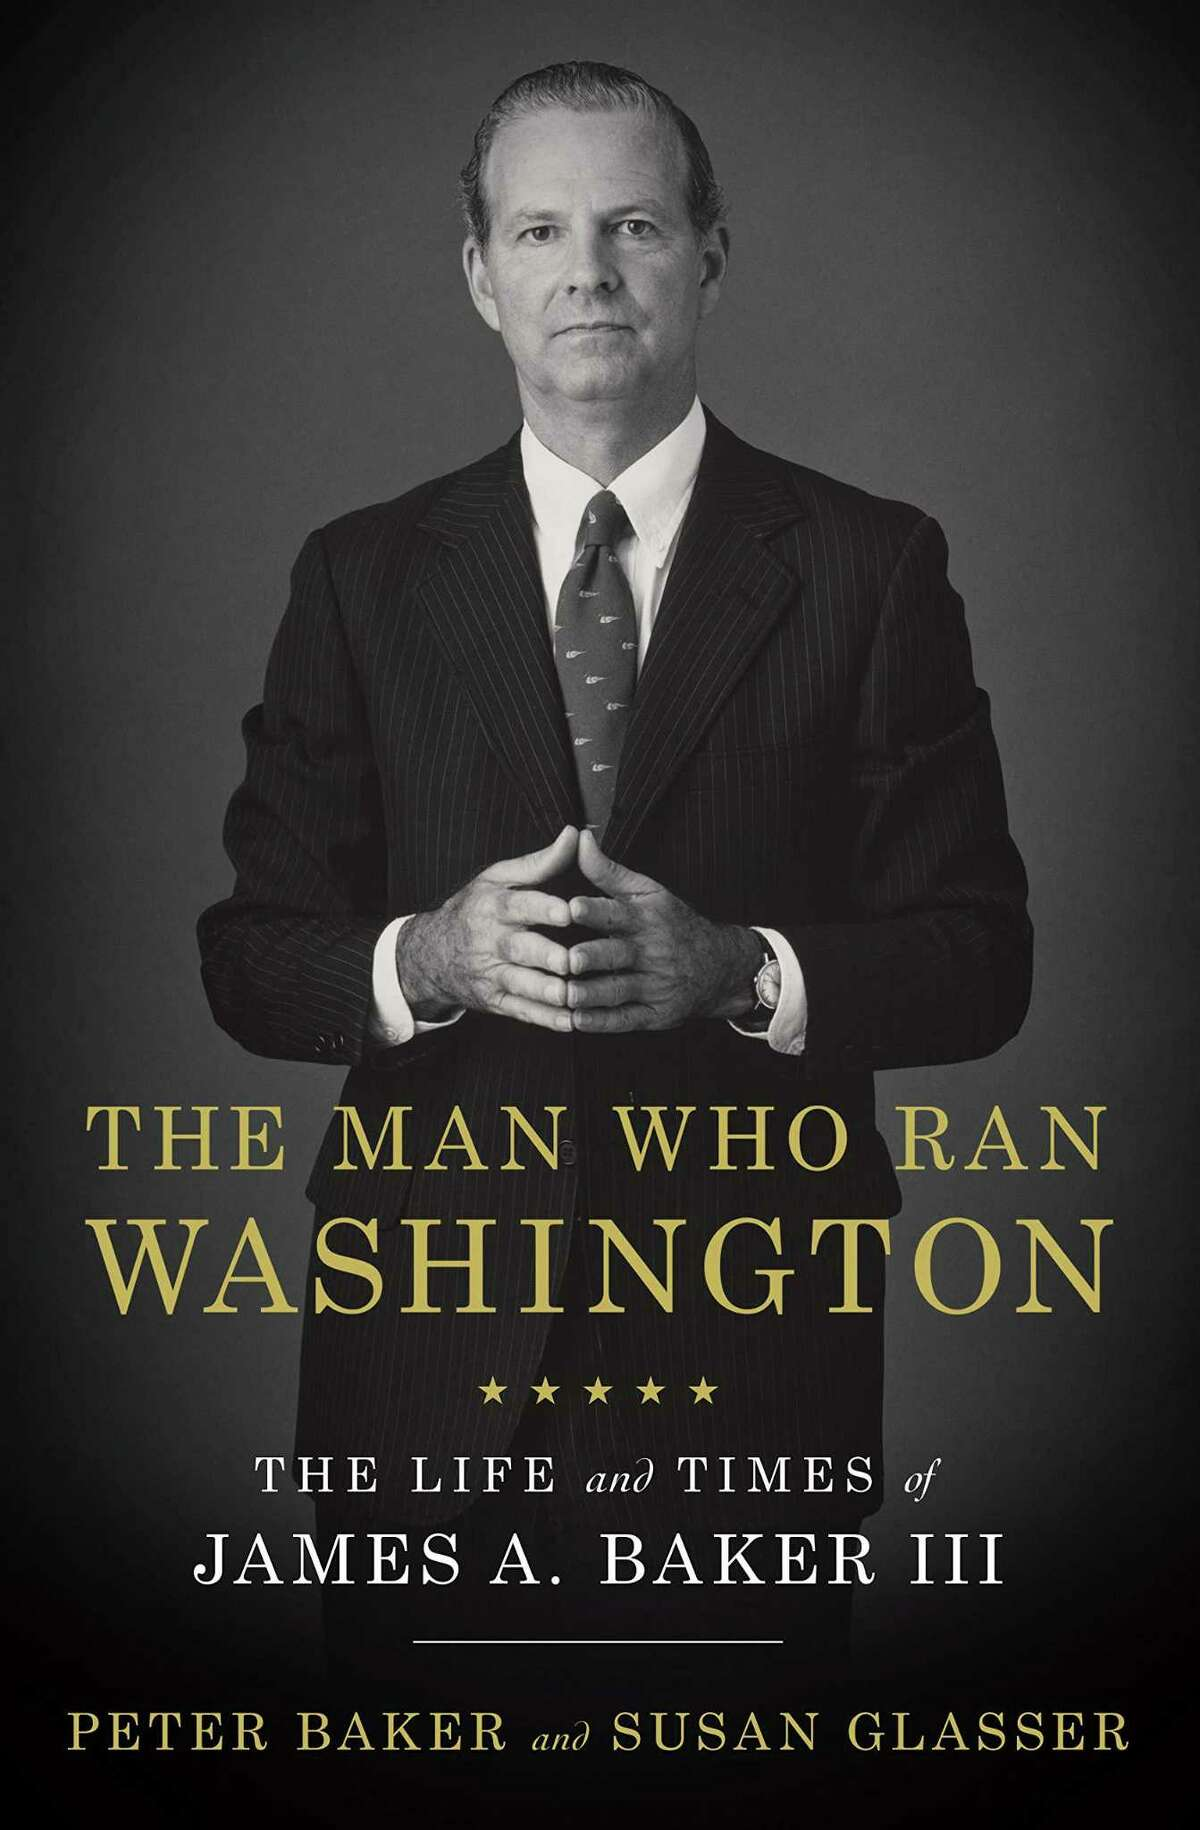 """Cover image for """"The Man Who Ran Washington,"""" a biography of James A. Baker III by Peter Baker and Susan Glasser"""